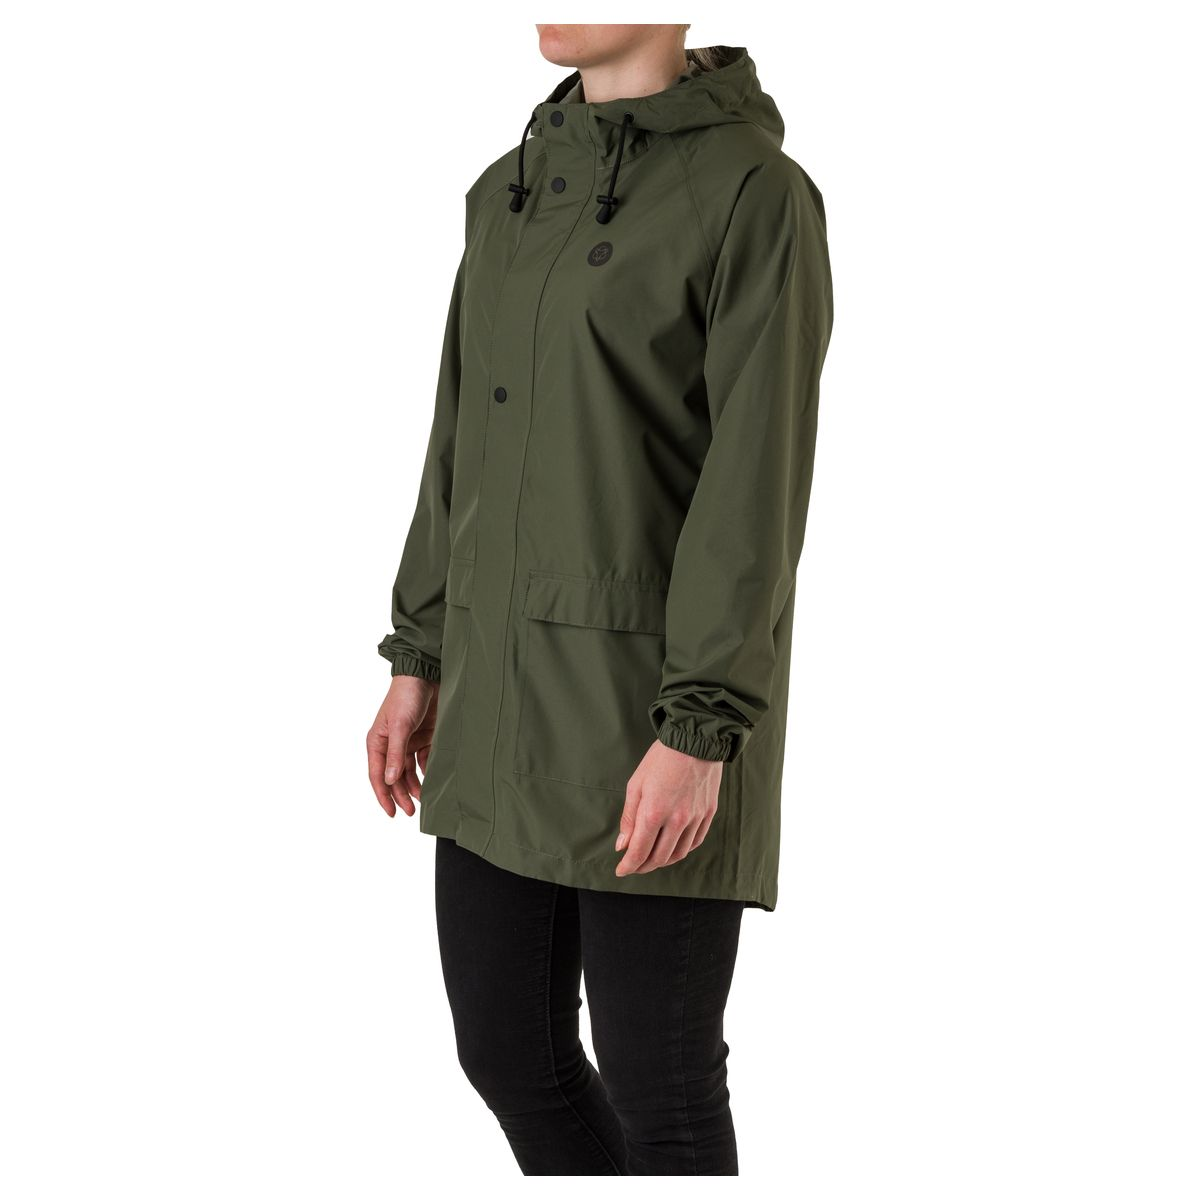 GO Parka Rain Jacket Essential fit example